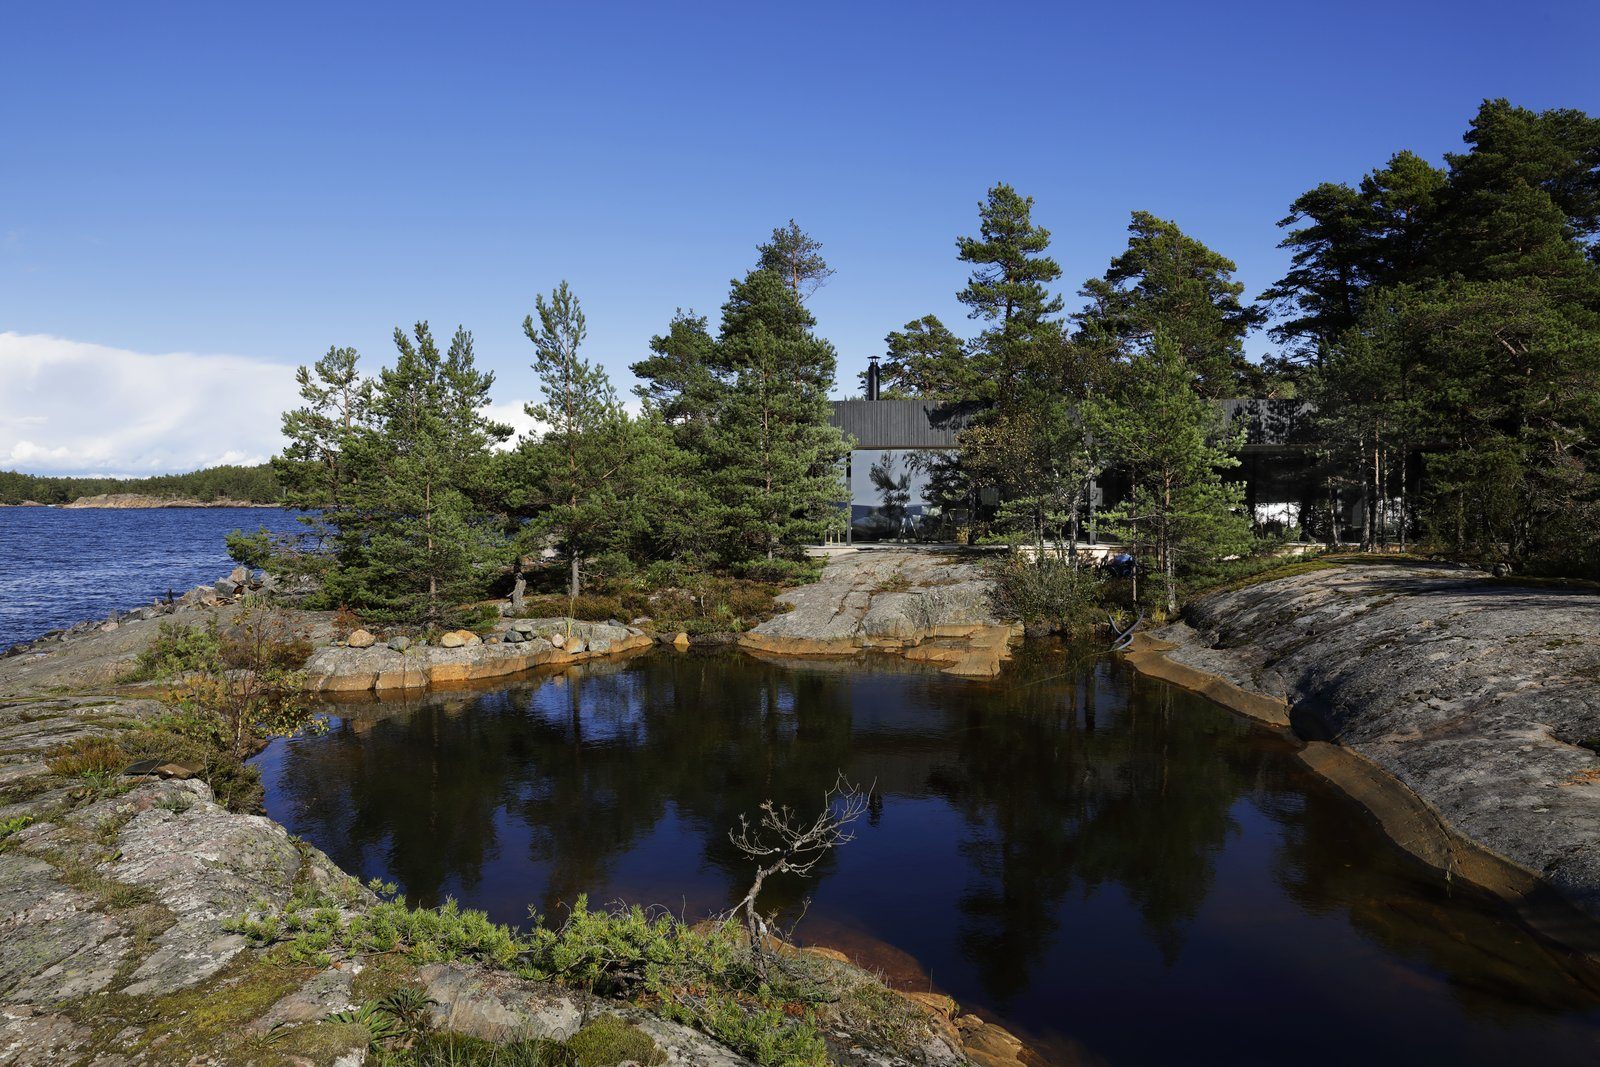 Villa Kivi on a tiny island by Vertti Kivi